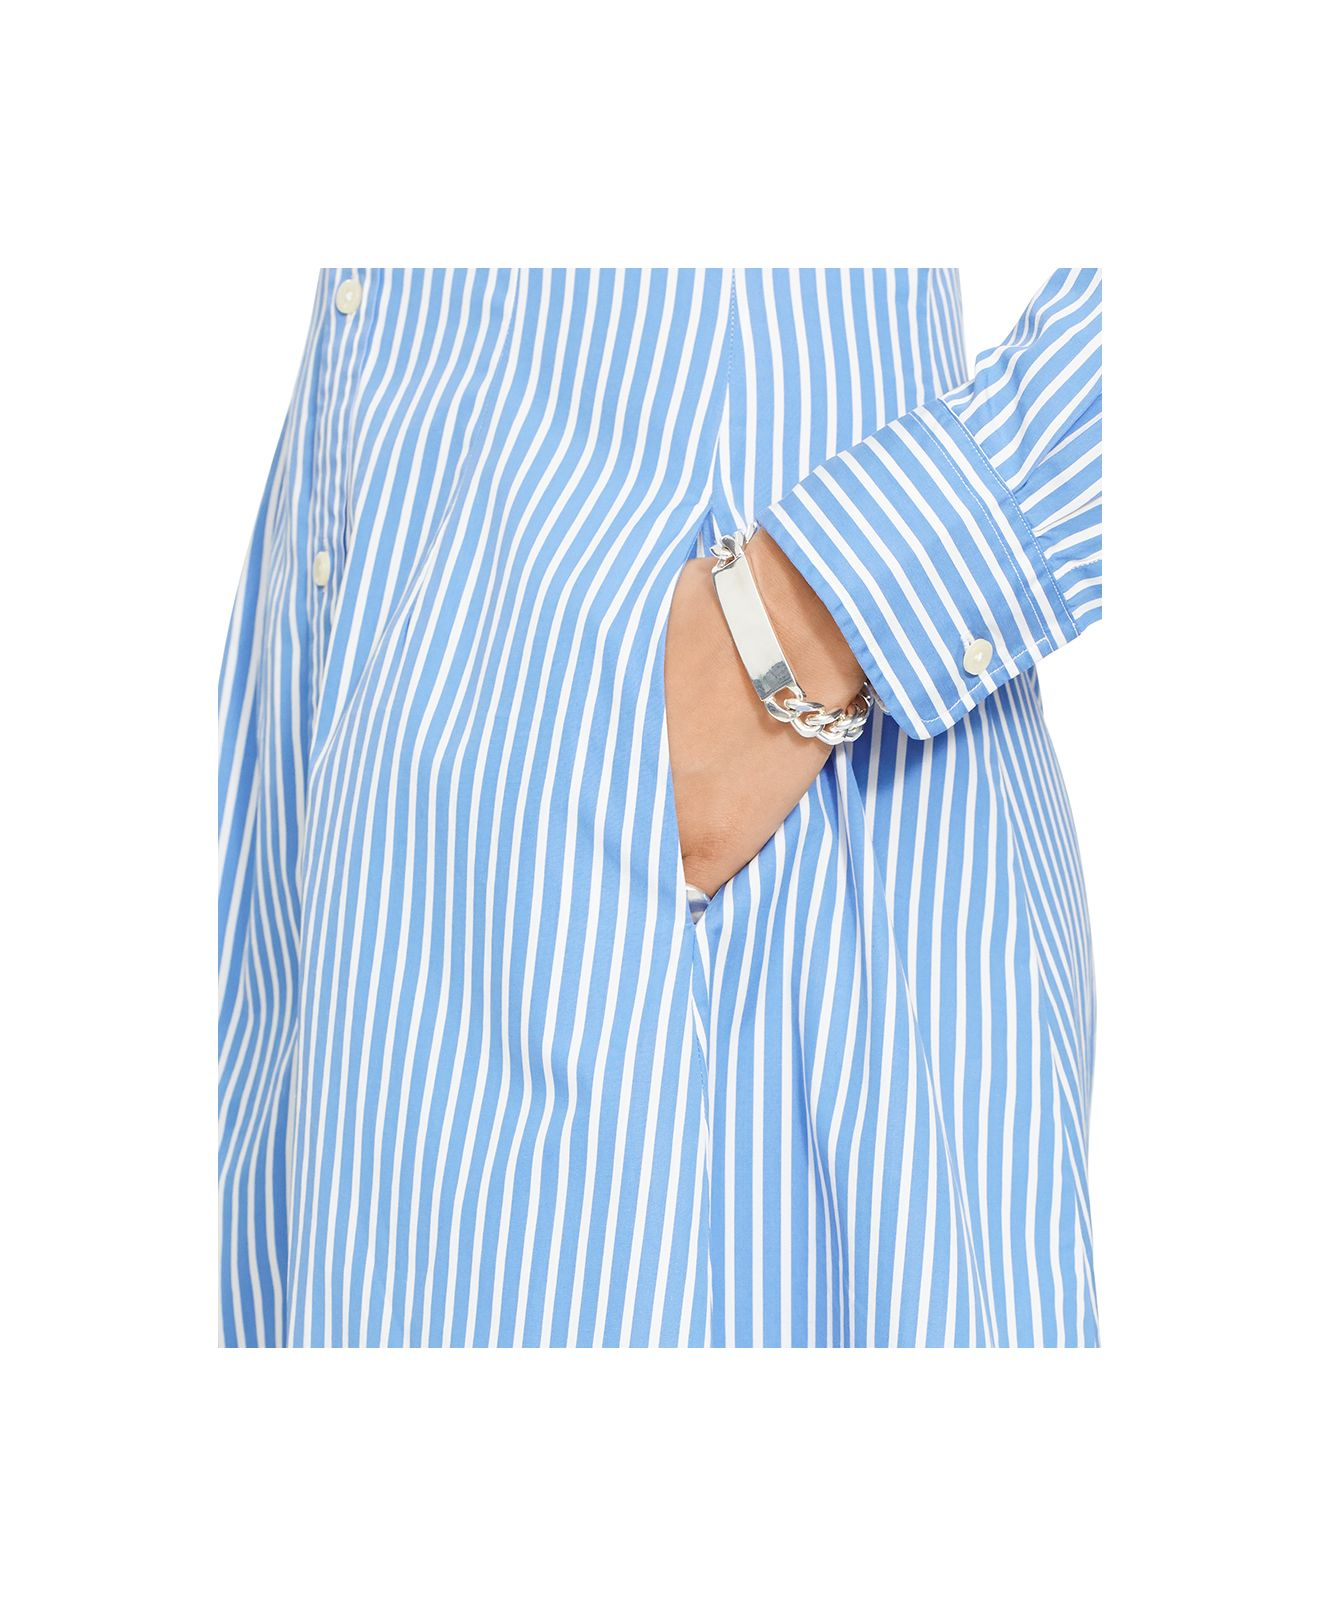 f3f02b7f1c8 Polo Ralph Lauren Long-Sleeve Striped Shirtdress in Blue - Lyst